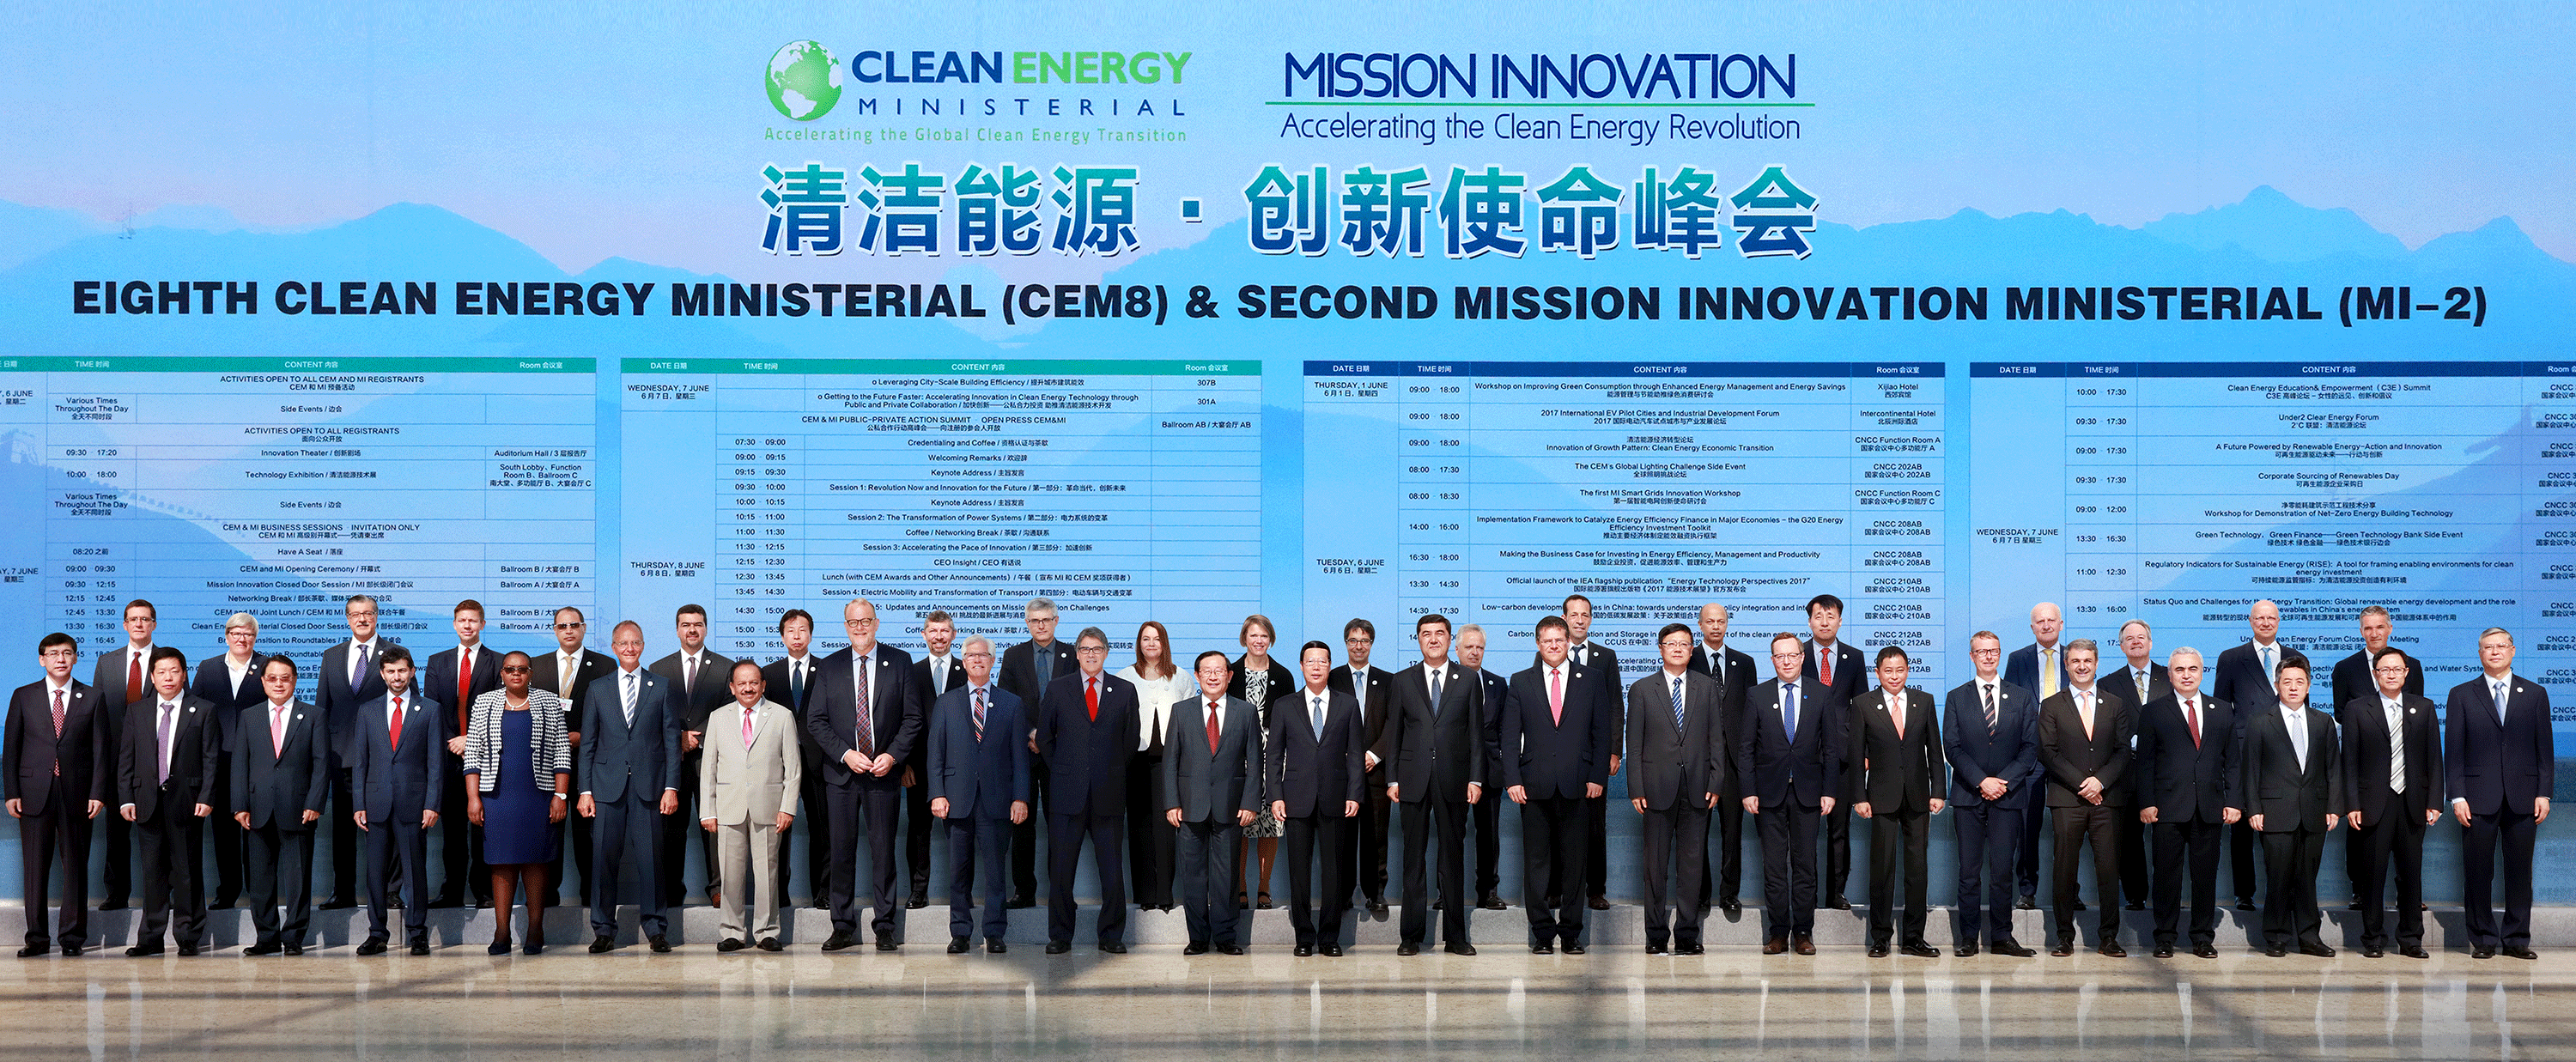 World leaders launch Mission Innovation at the United Nations Climate Change Conference 2015 (COP21) in Paris-Le Bourget, France